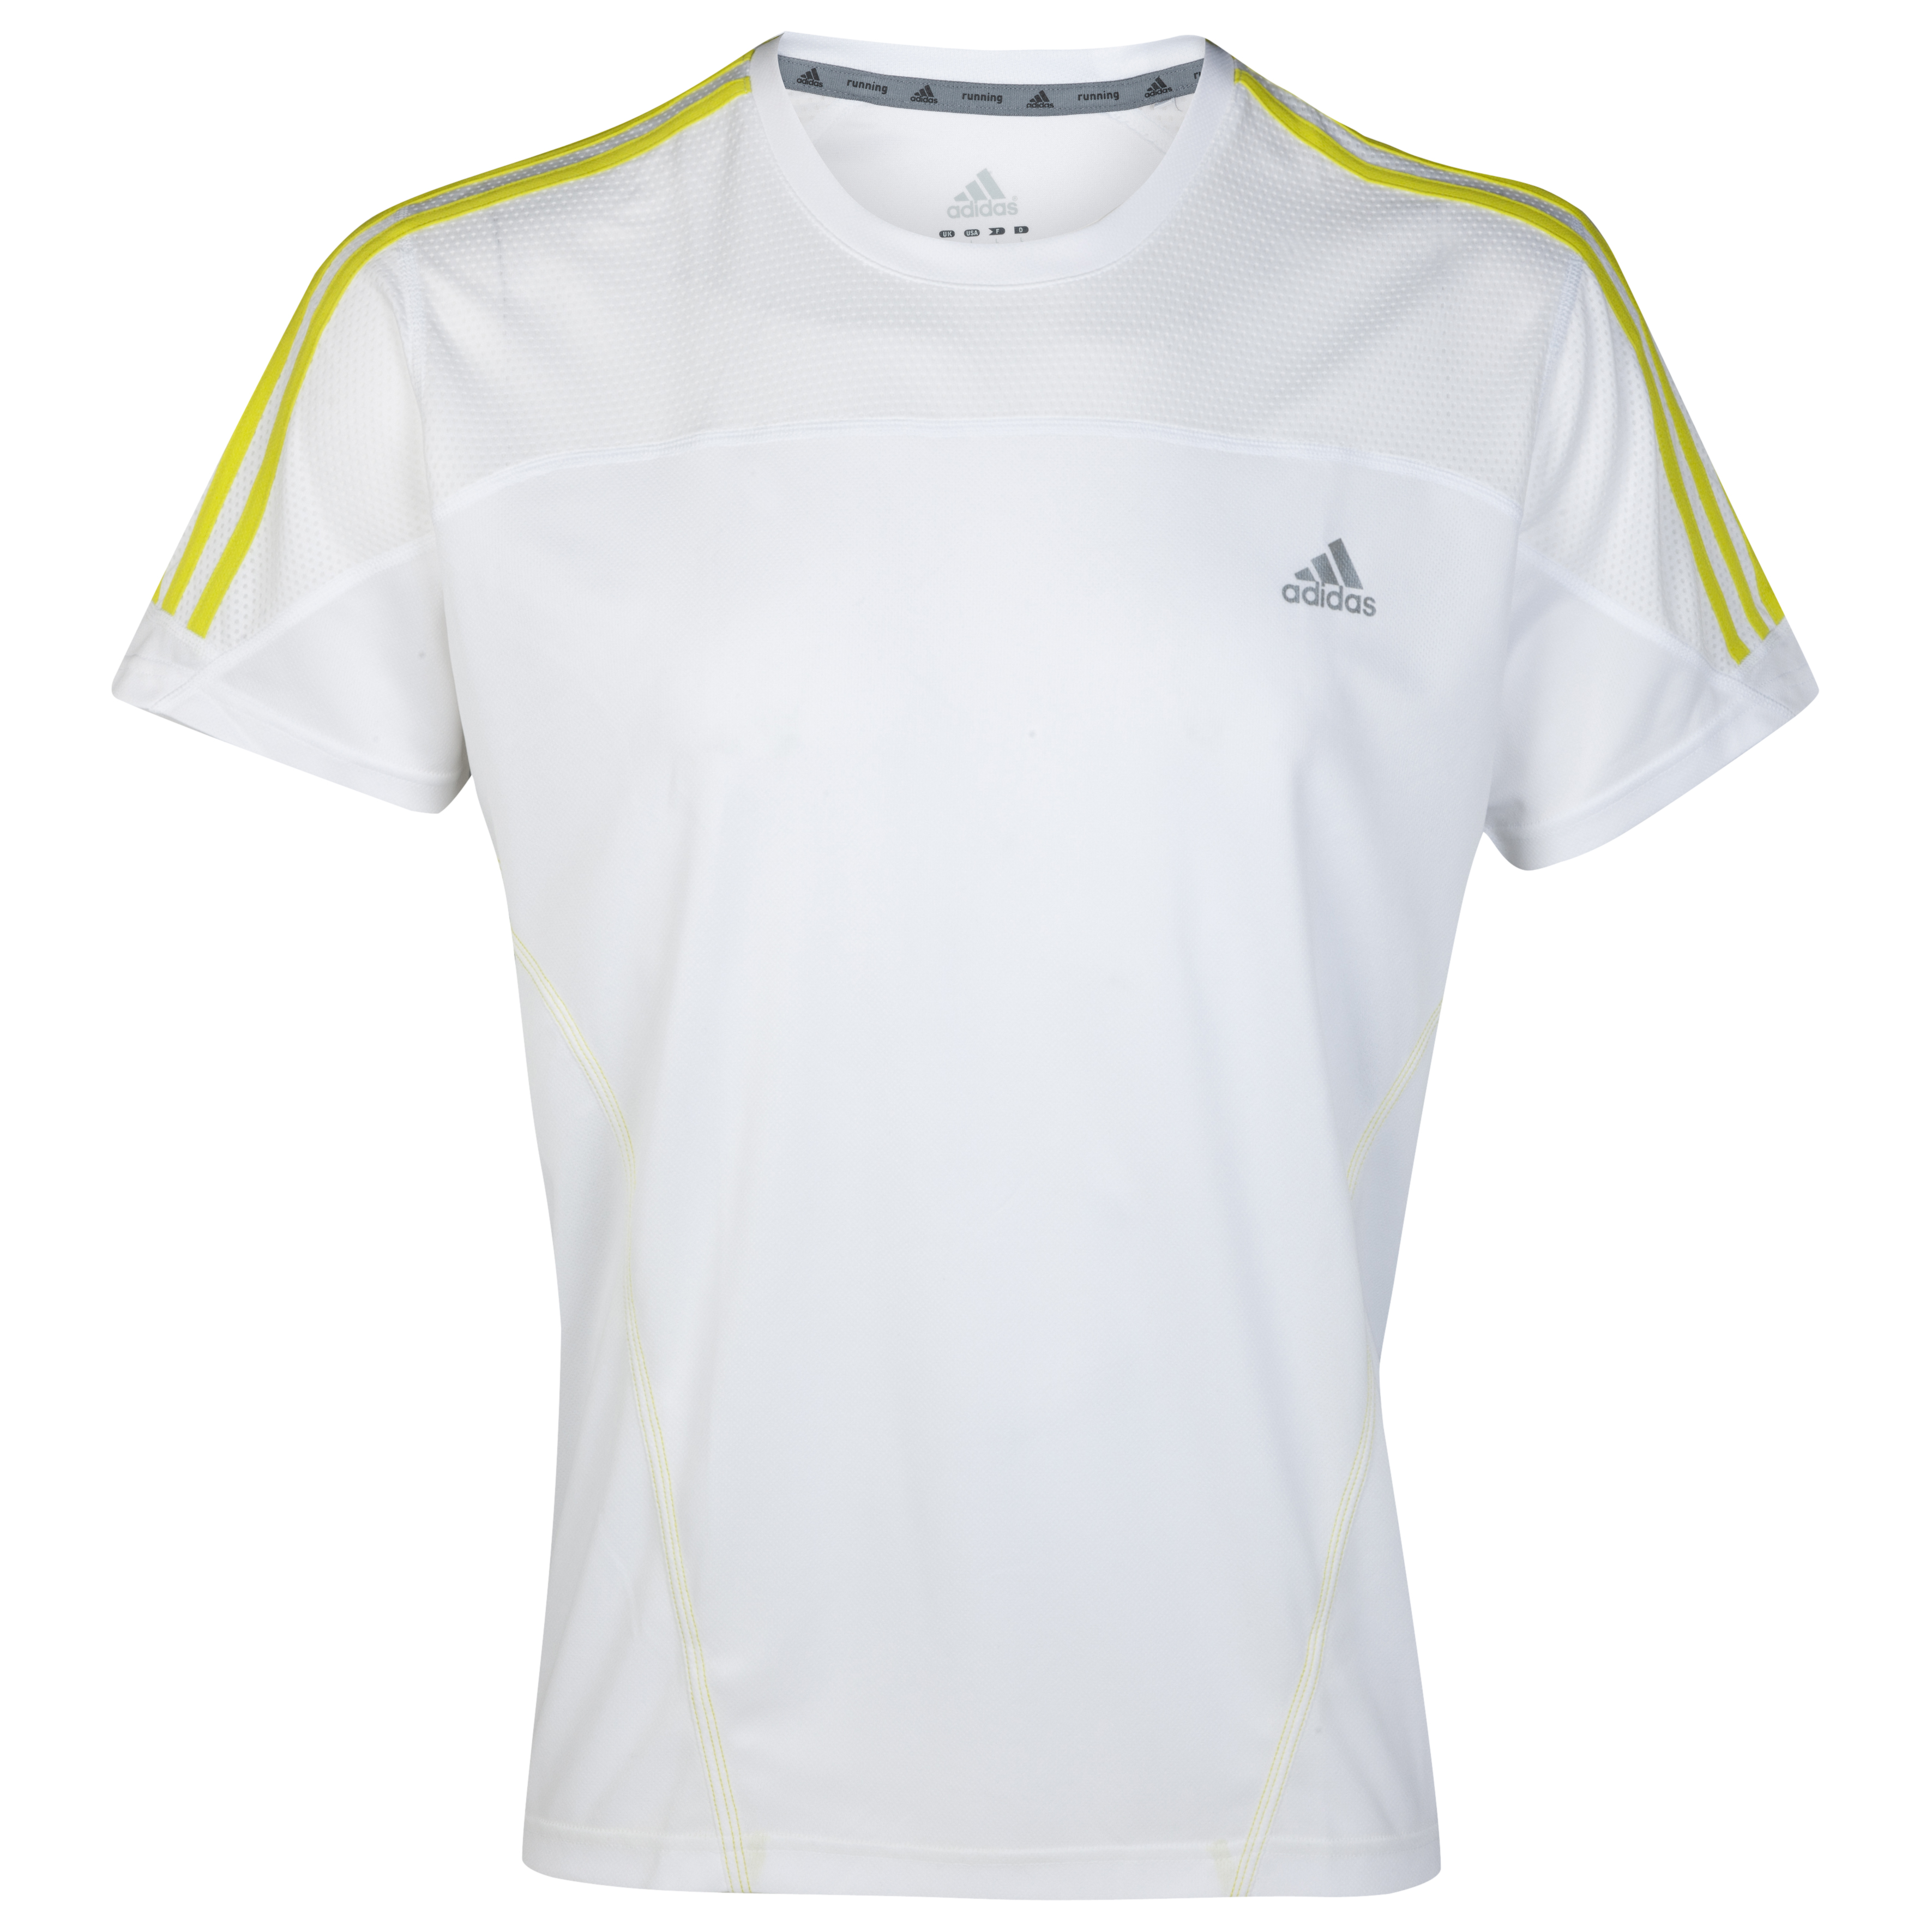 Adidas Response DS T-Shirt - White/Lab Lime